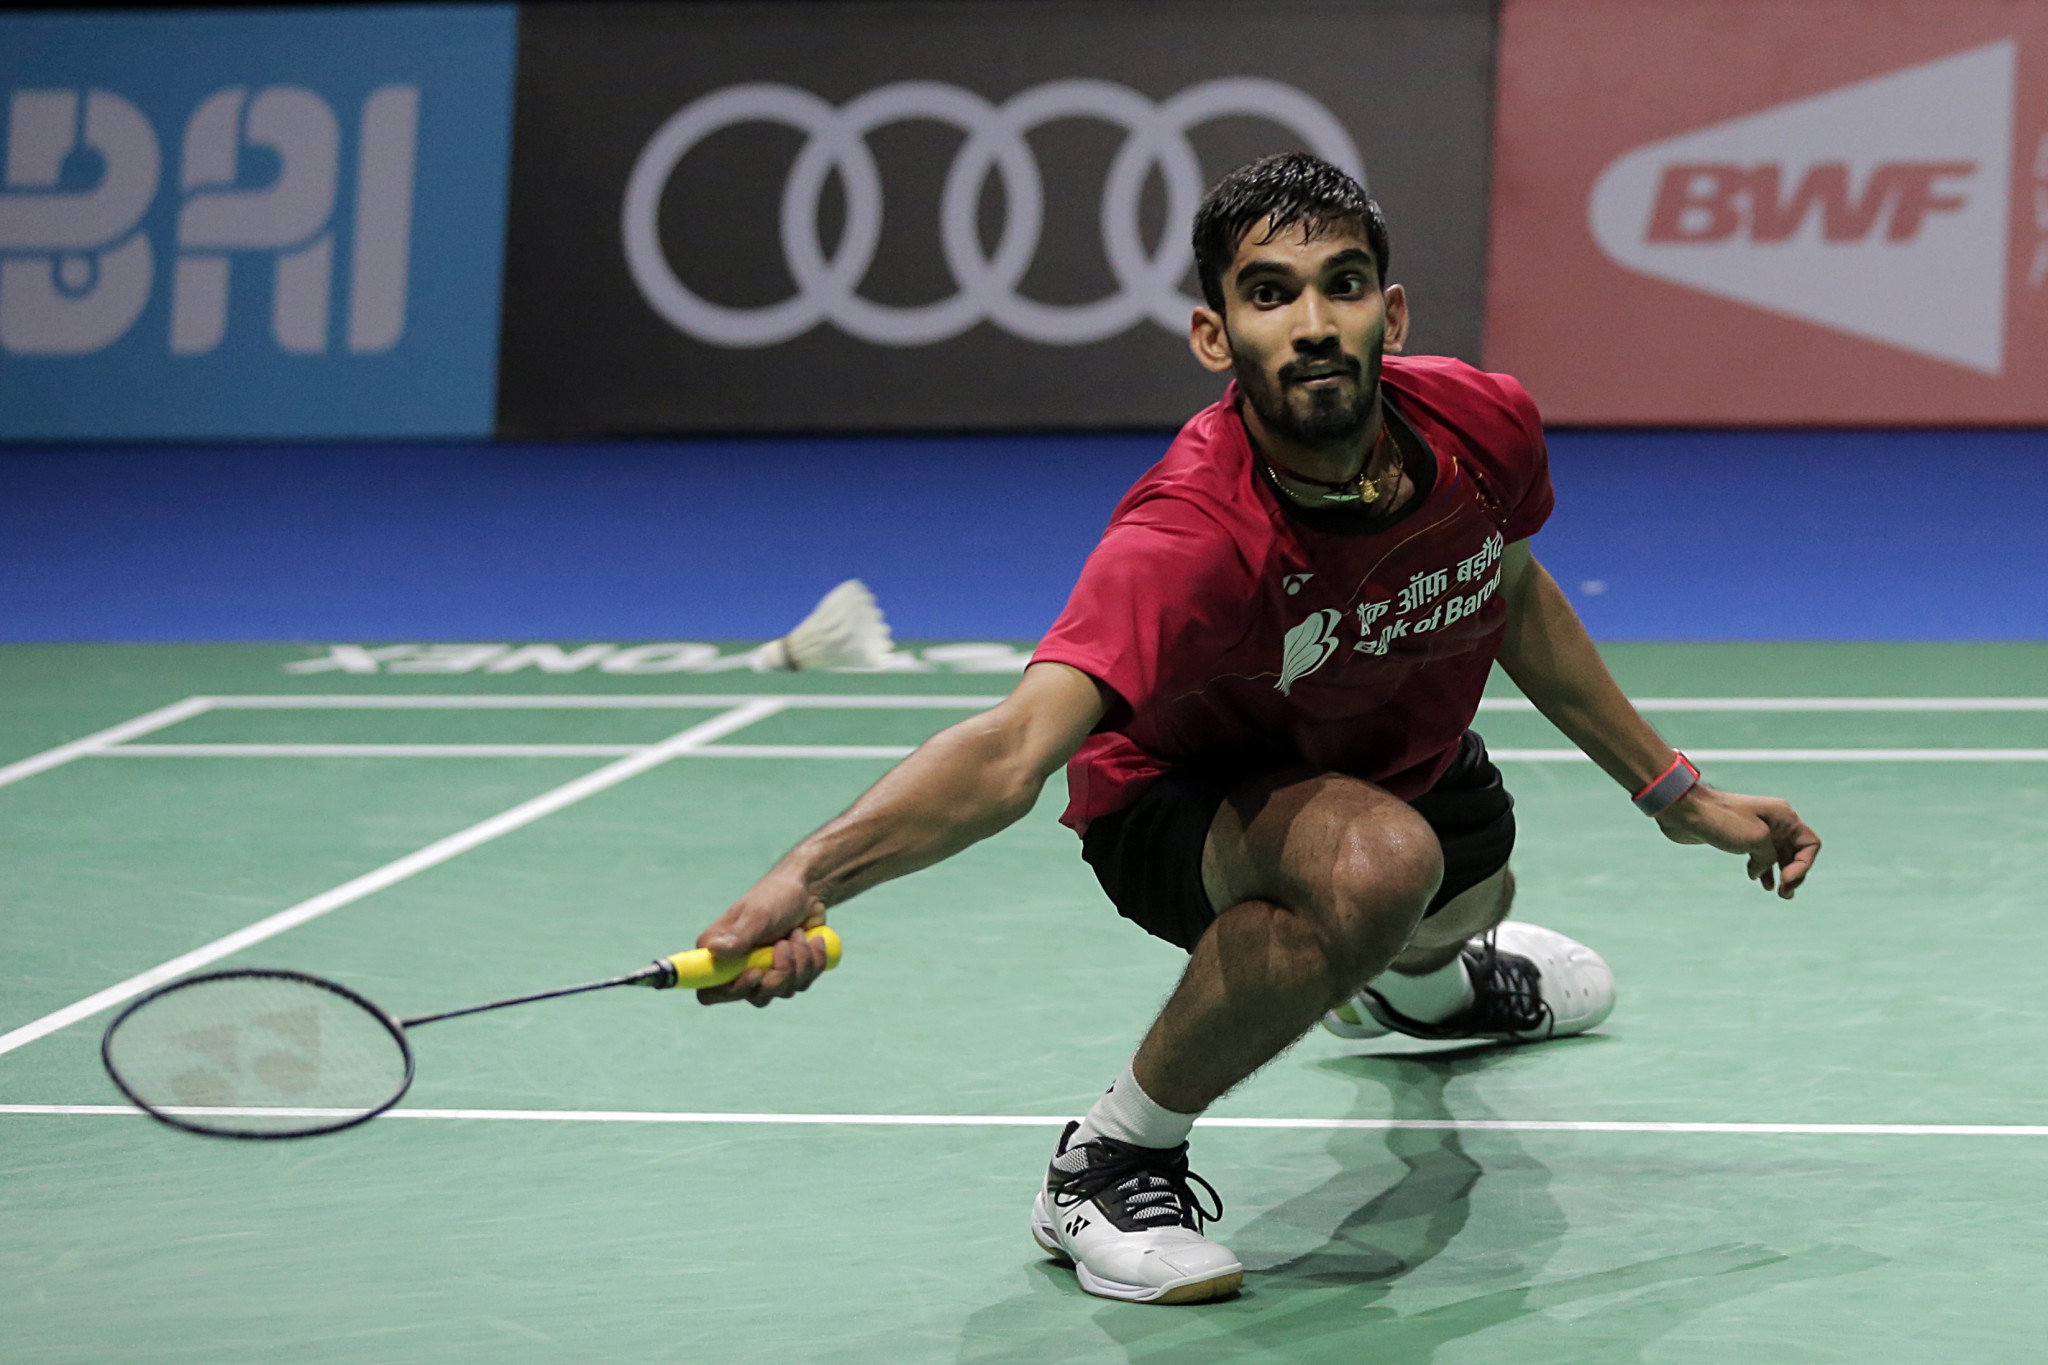 Home player Srikanth Kidambi will be hoping to win the India Open for a second time after victory in 2015 ©Getty Images